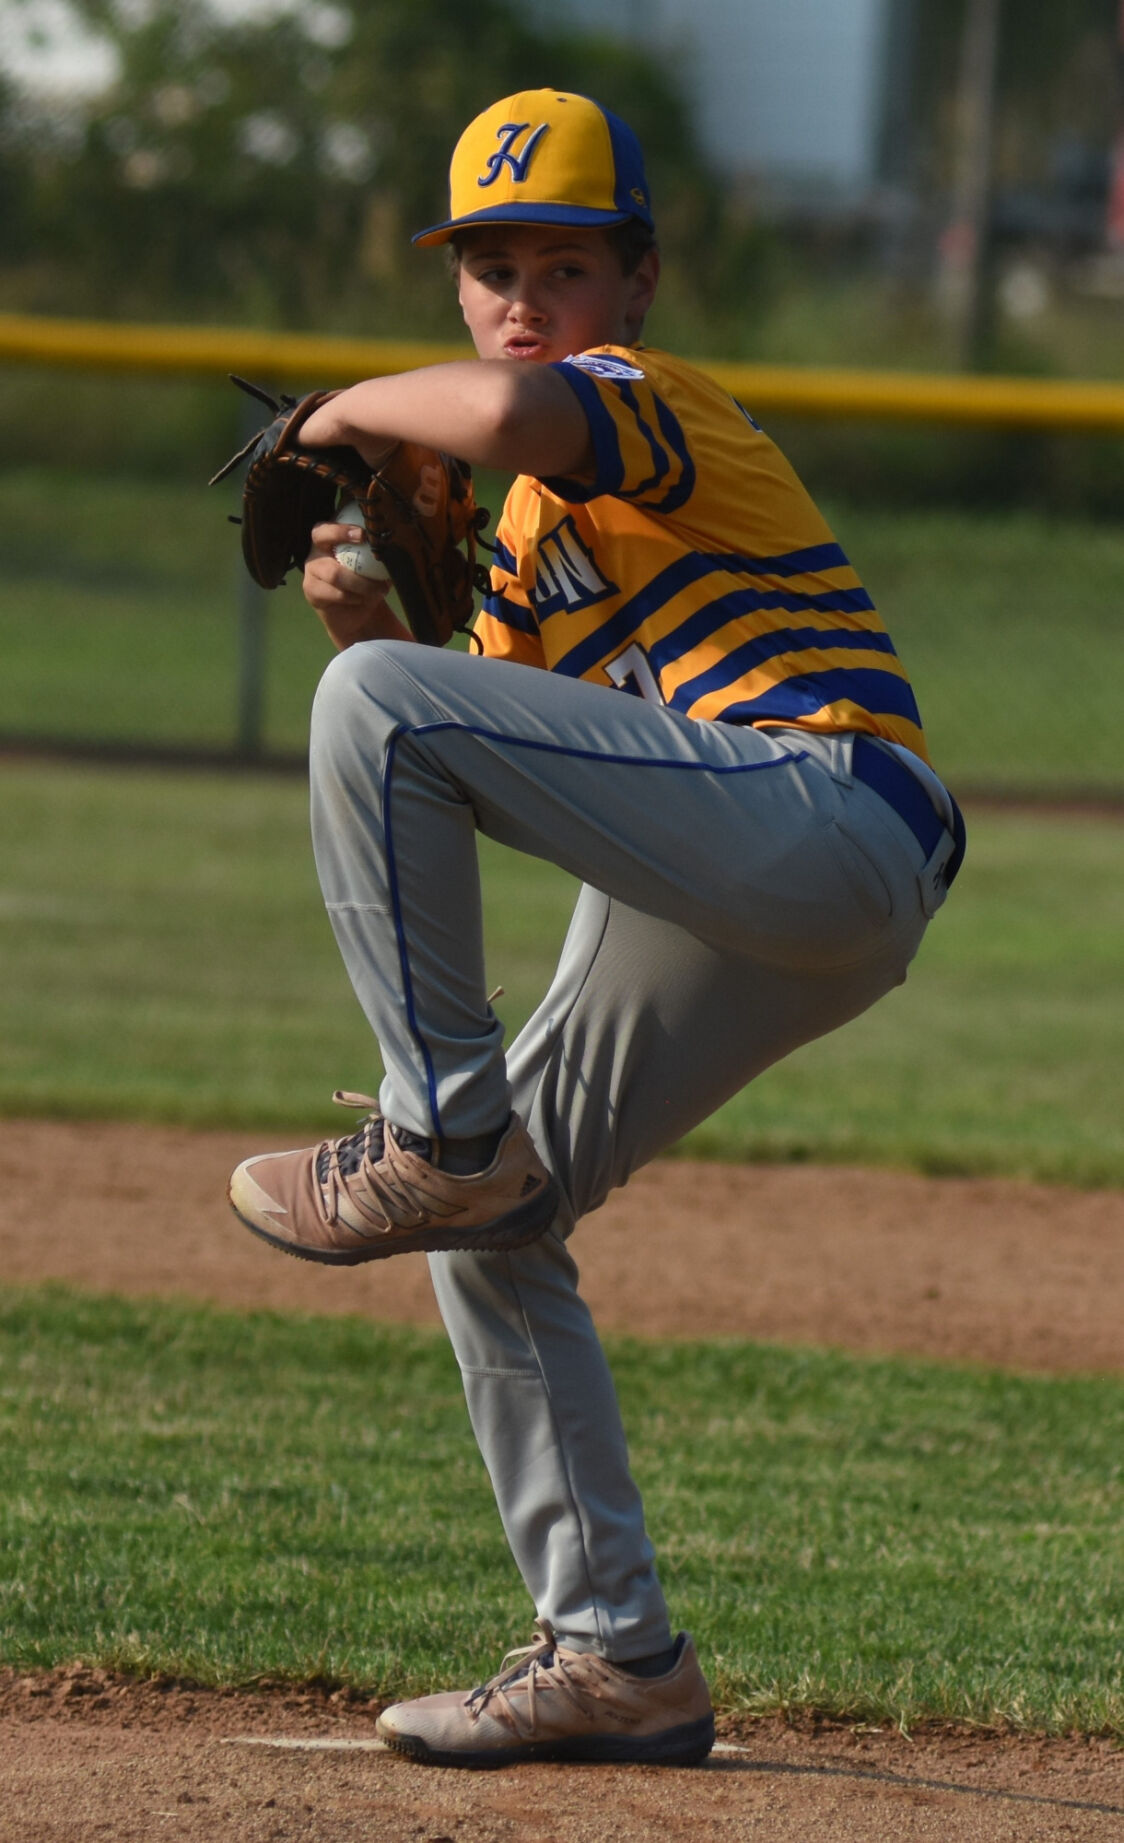 LITTLE LEAGUE BASEBALL: Conte leads Hudson Stars past Northern Columbia